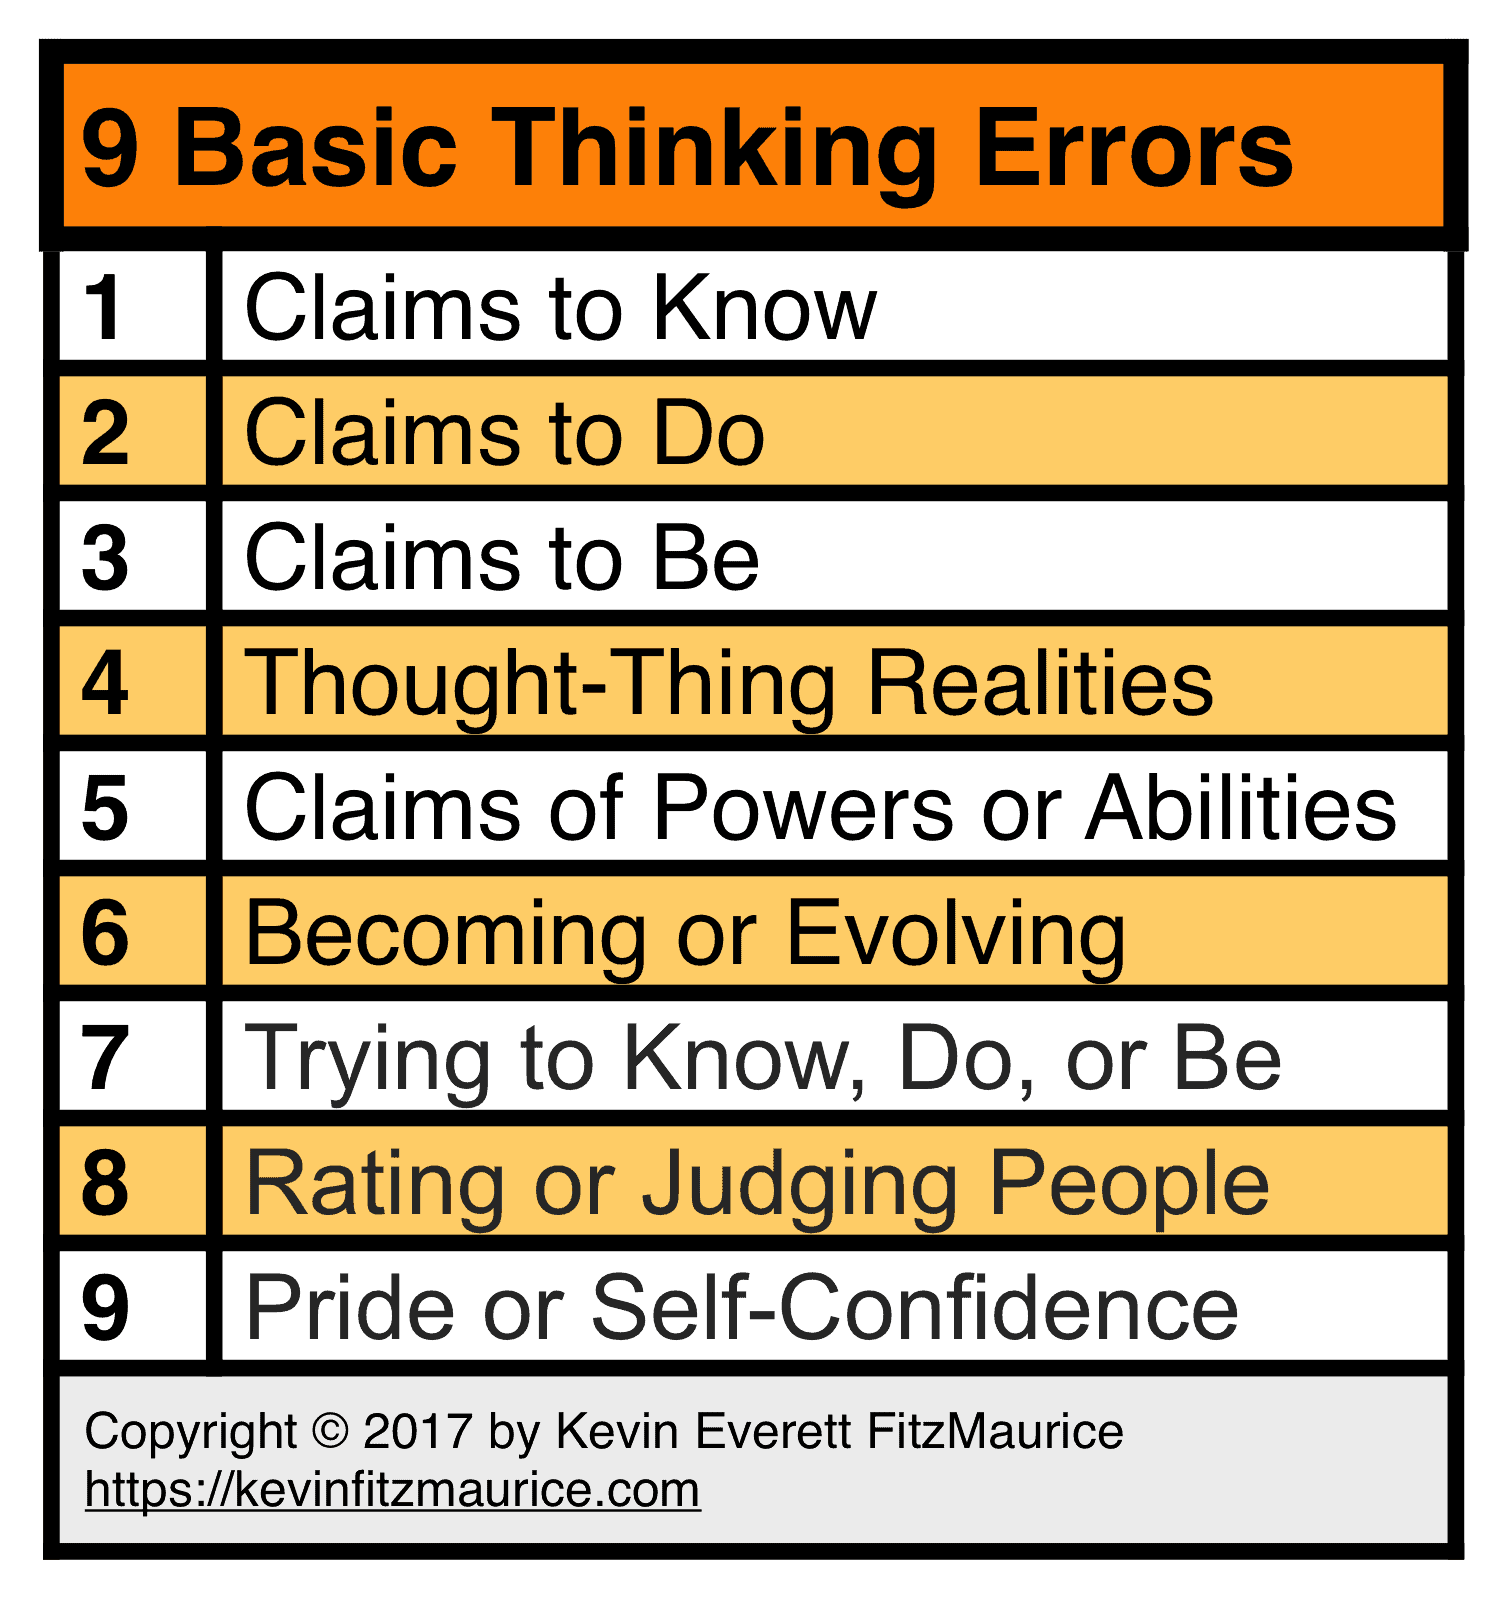 9 Basic Thinking Errors